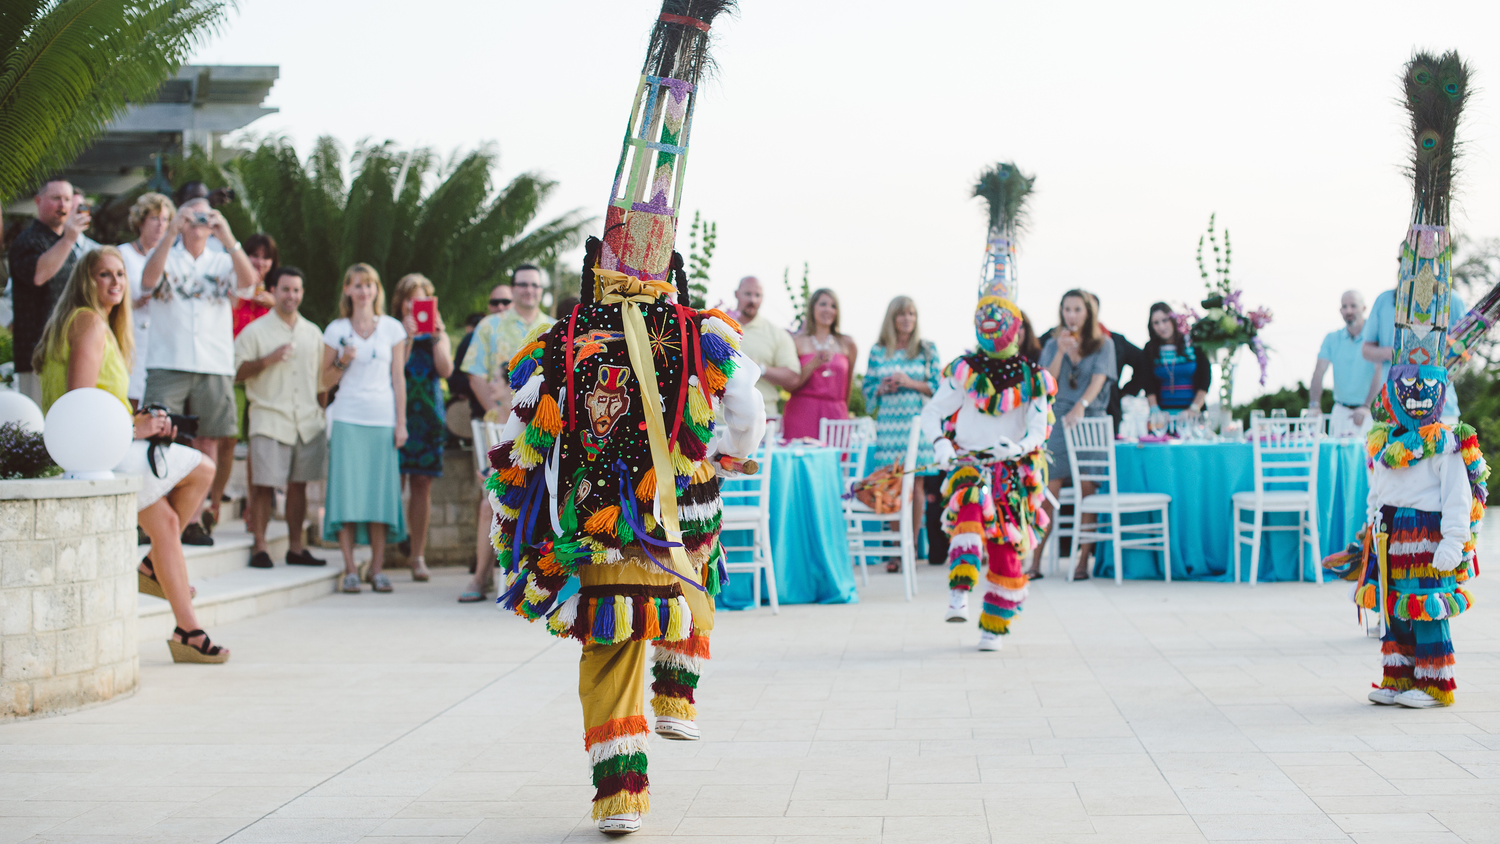 Amemorable cultural performance at yourcorporate event creates anunforgettableexperience